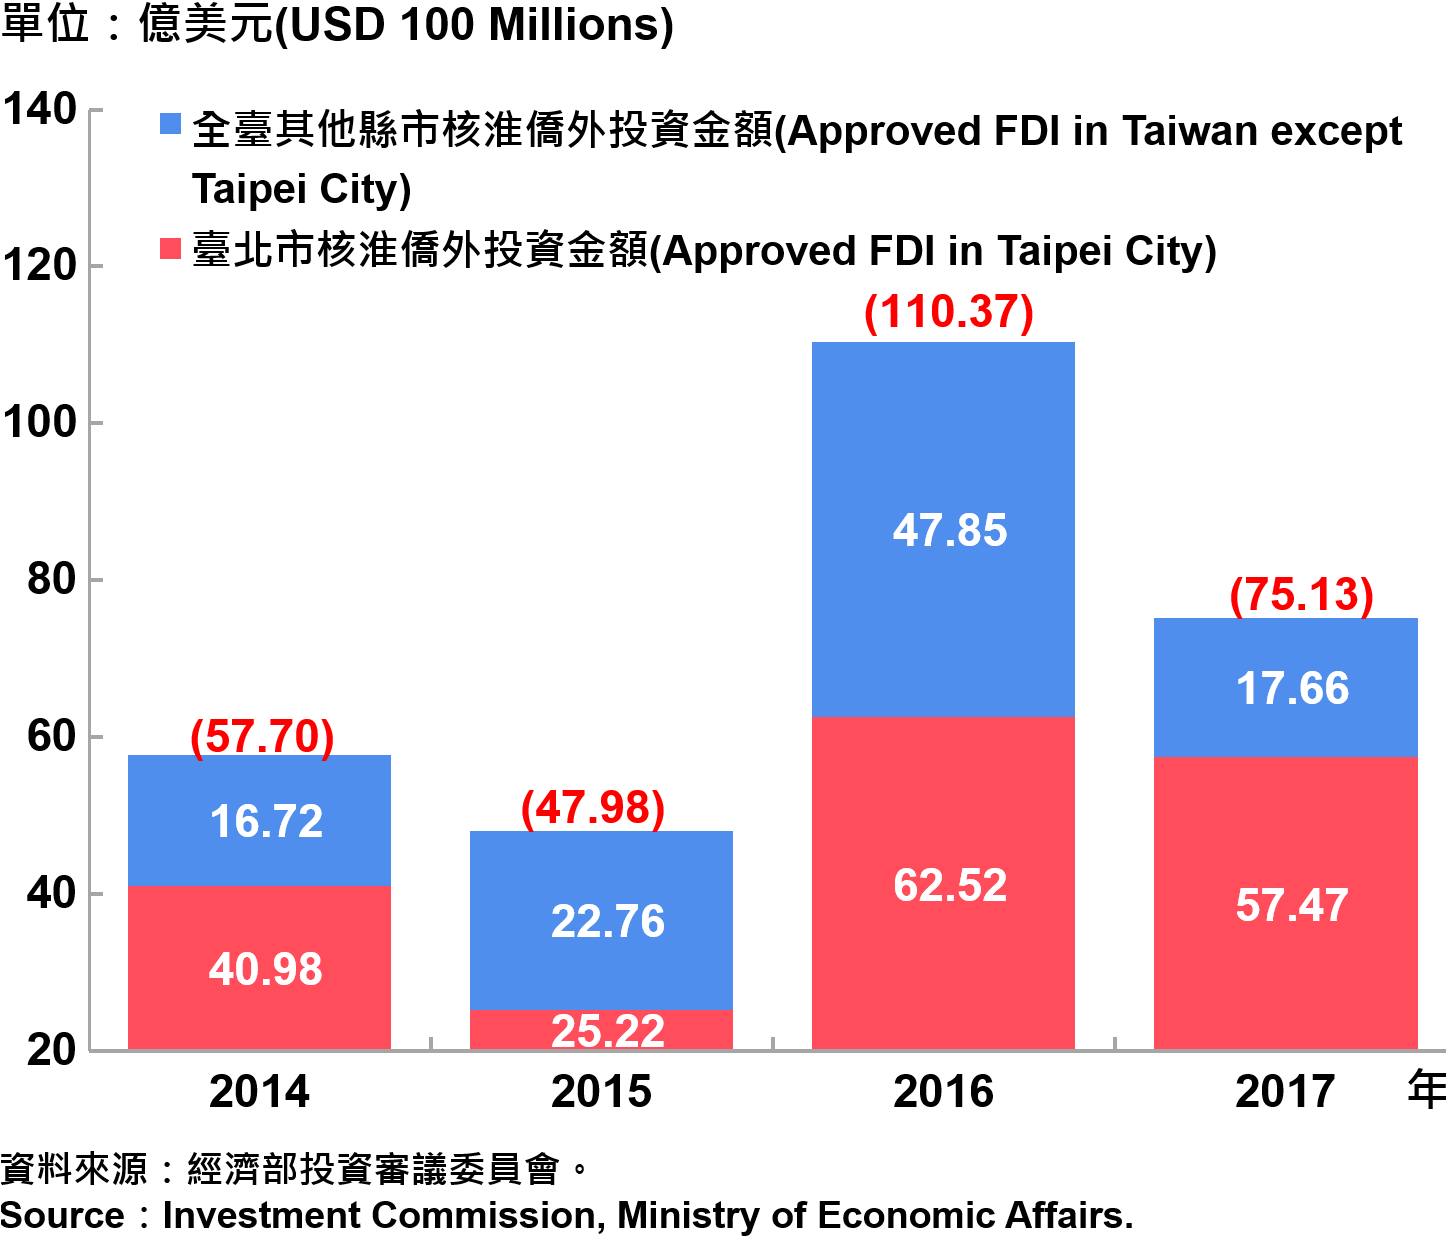 圖13、臺北市與全國僑外投資金額—2017 Foreign Direct Investment (FDI) in Taipei City and Taiwan—2017